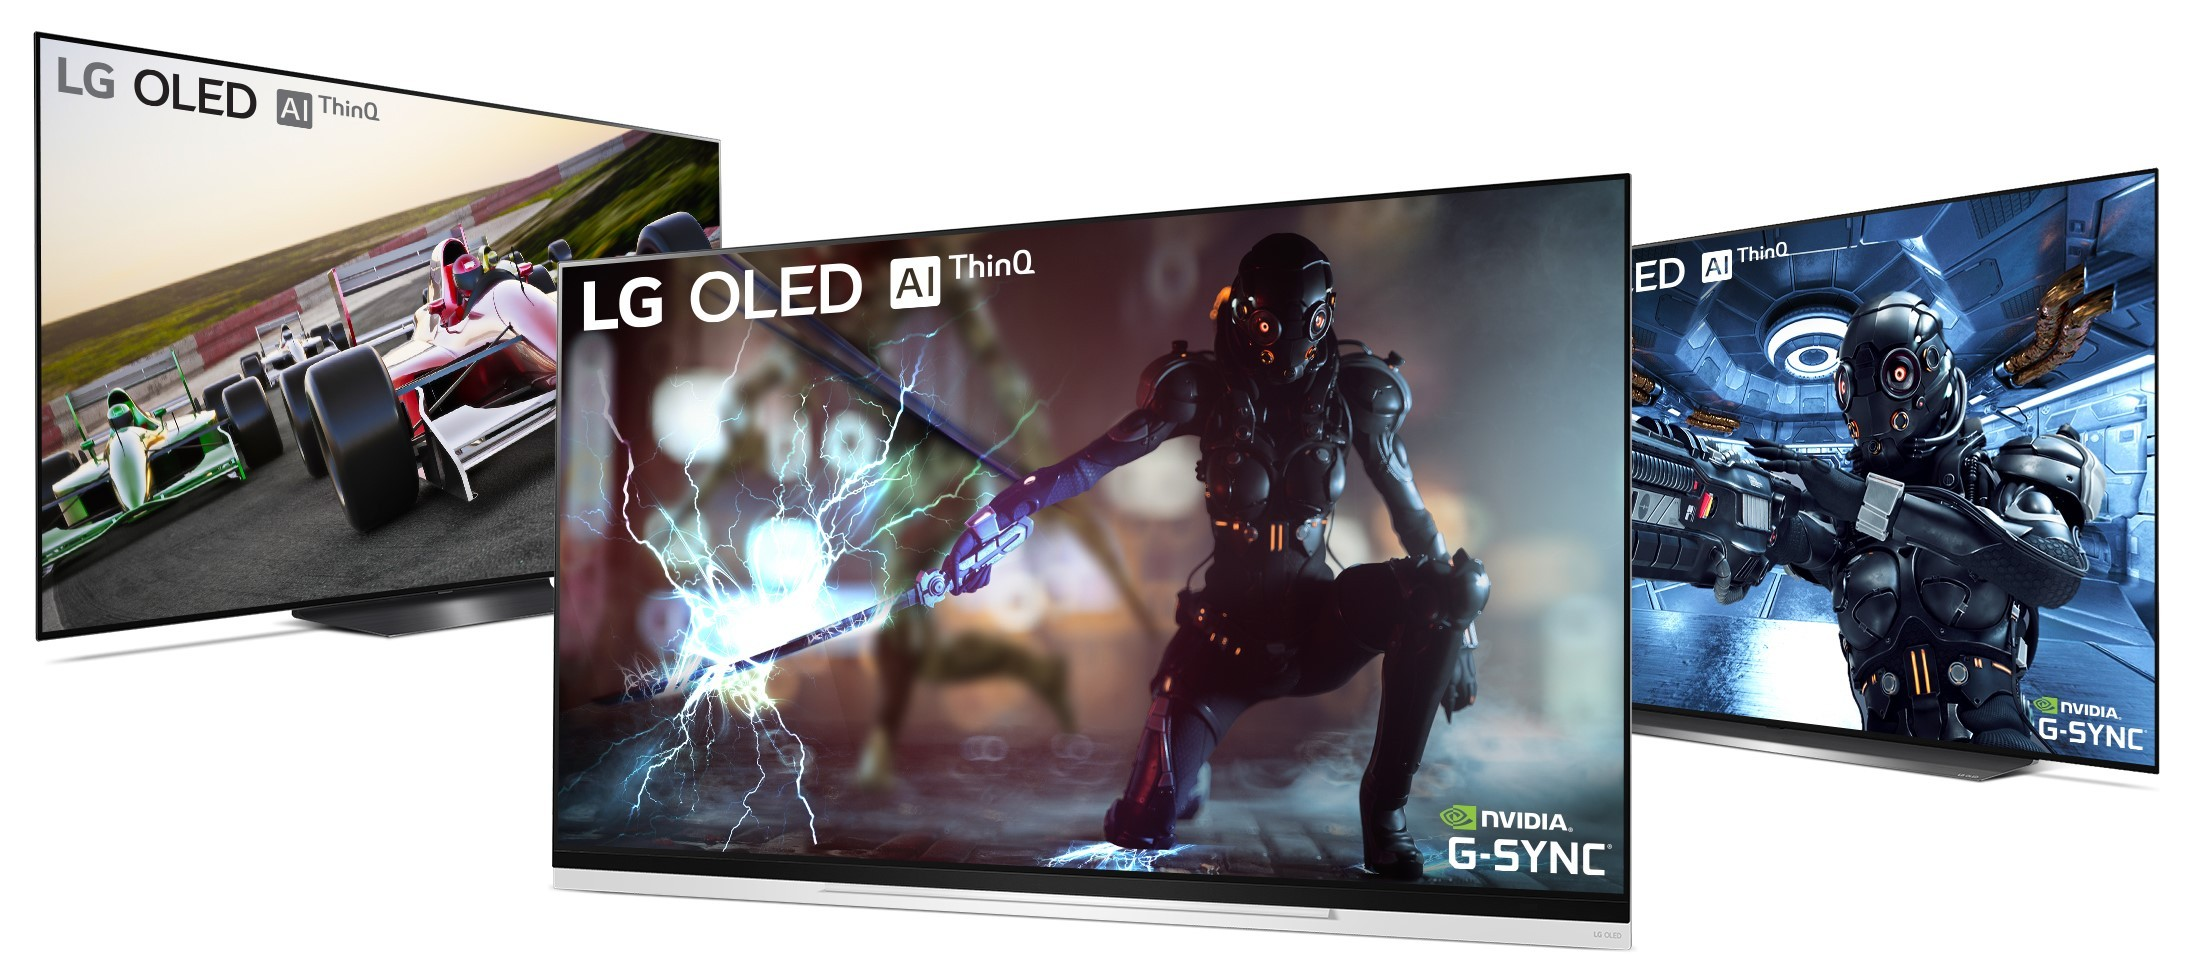 Image 1 : TV LG OLED : le firmware G-Sync Compatible arrive cette semaine